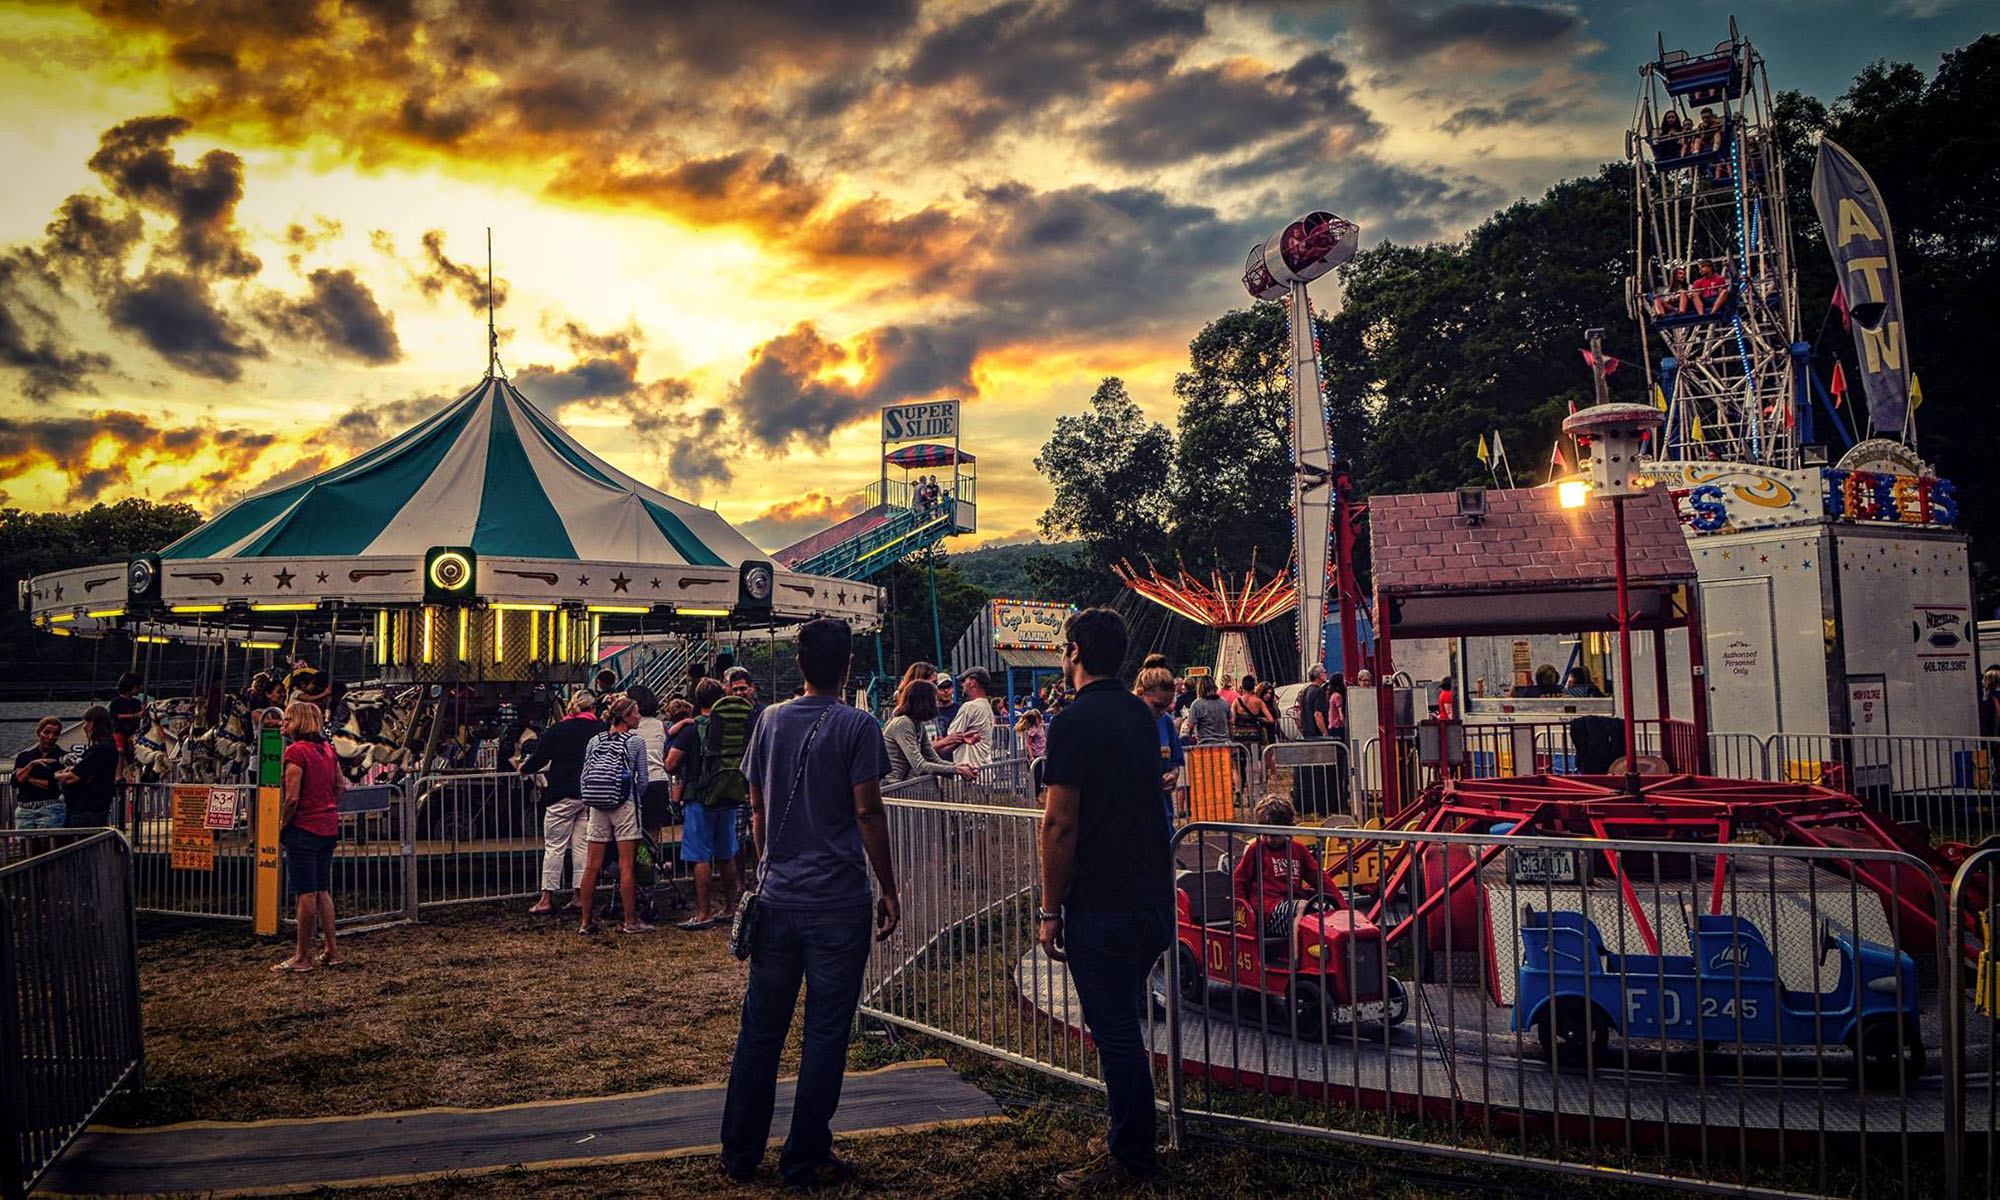 Hamburg Fair